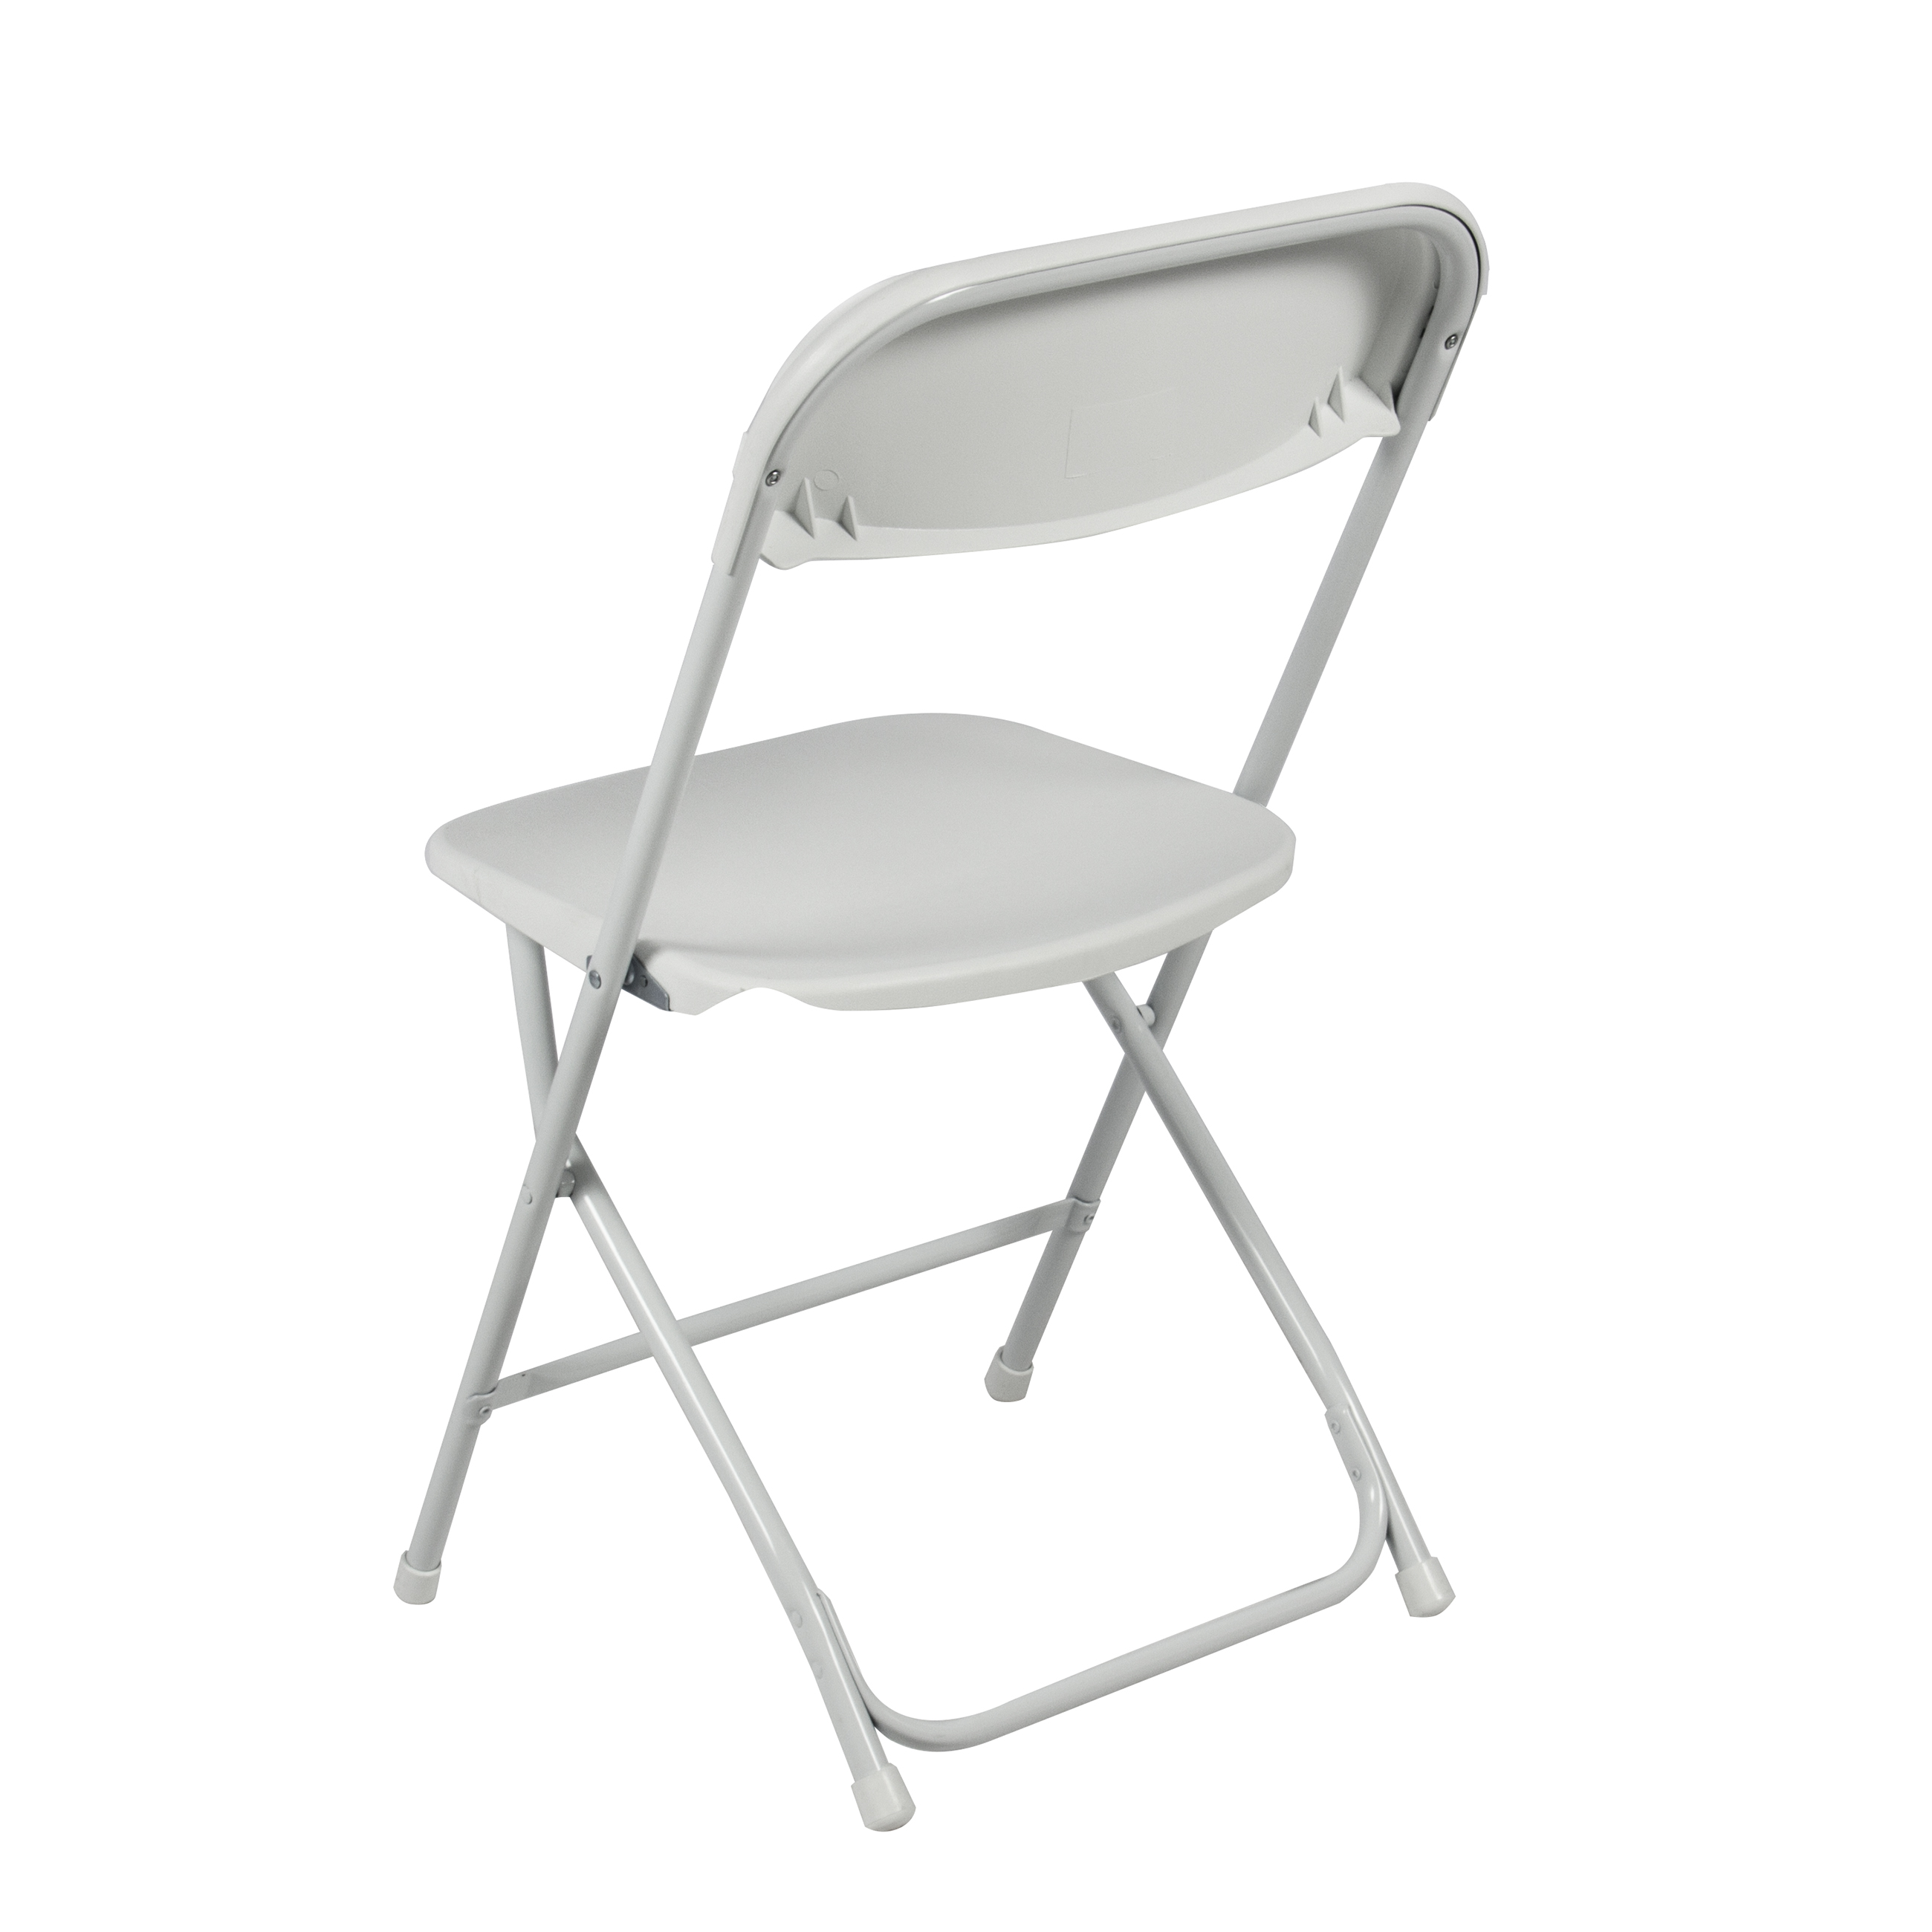 Cheap Plastic Folding Chairs Plastic Chairs Cheap And Best Darbylanefurniture